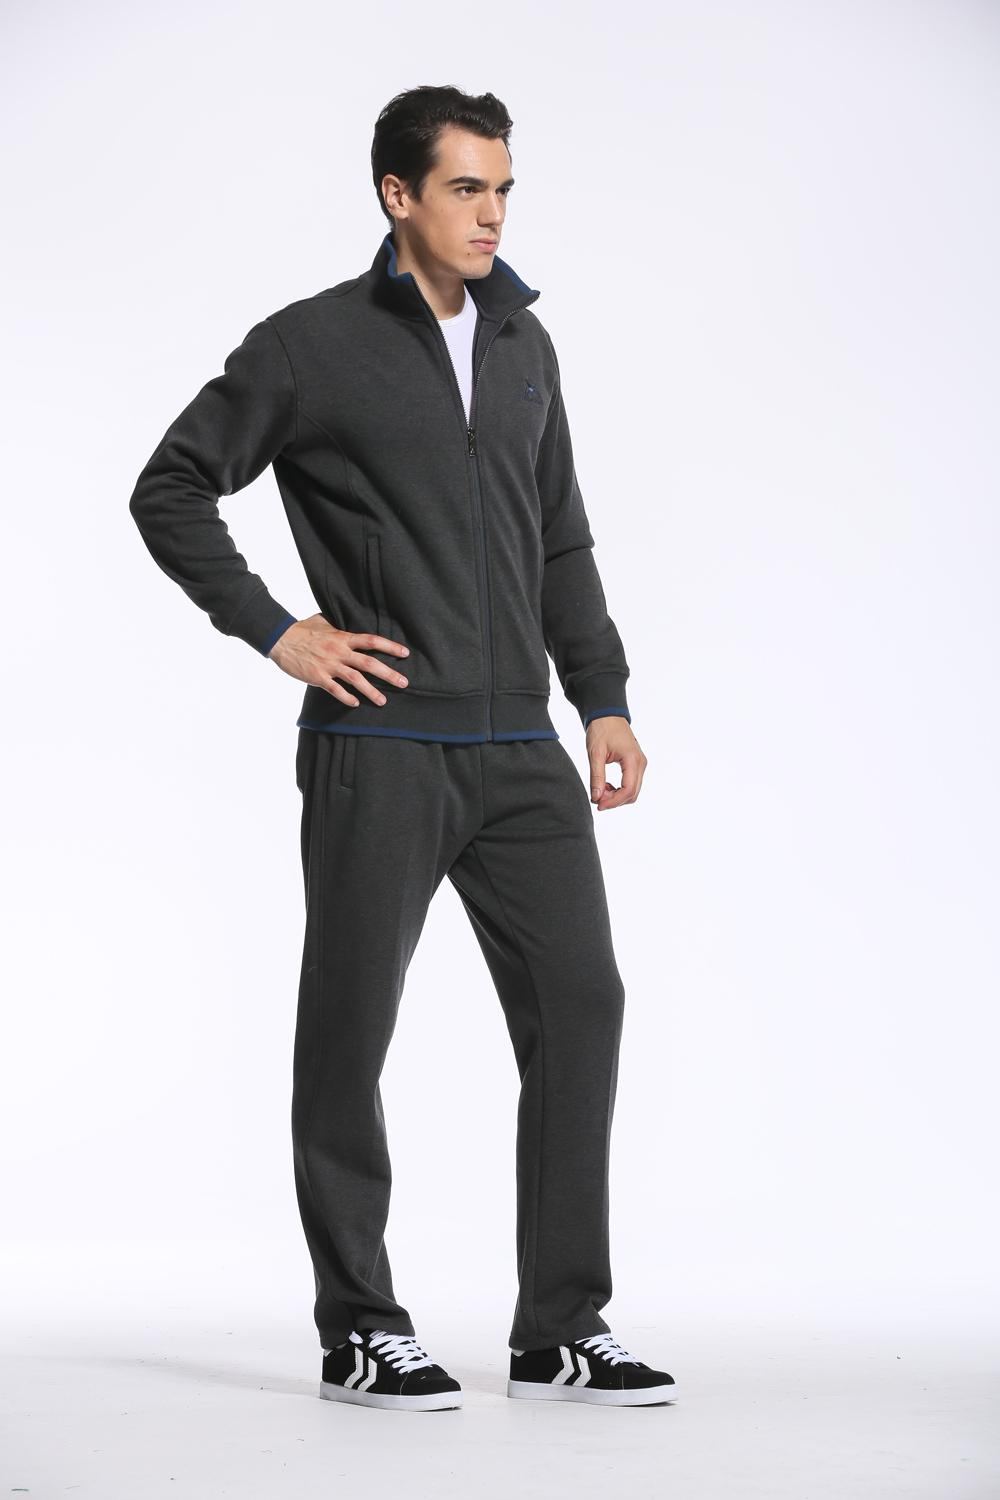 disborunmaba.ga offers 24, jogging suits wholesale products. About 84% of these are training & jogging wear, 4% are fitness & yoga wear, and 1% are other sportswear. A wide variety of jogging suits wholesale options are available to you, such as breathable, anti-bacterial, and maternity.